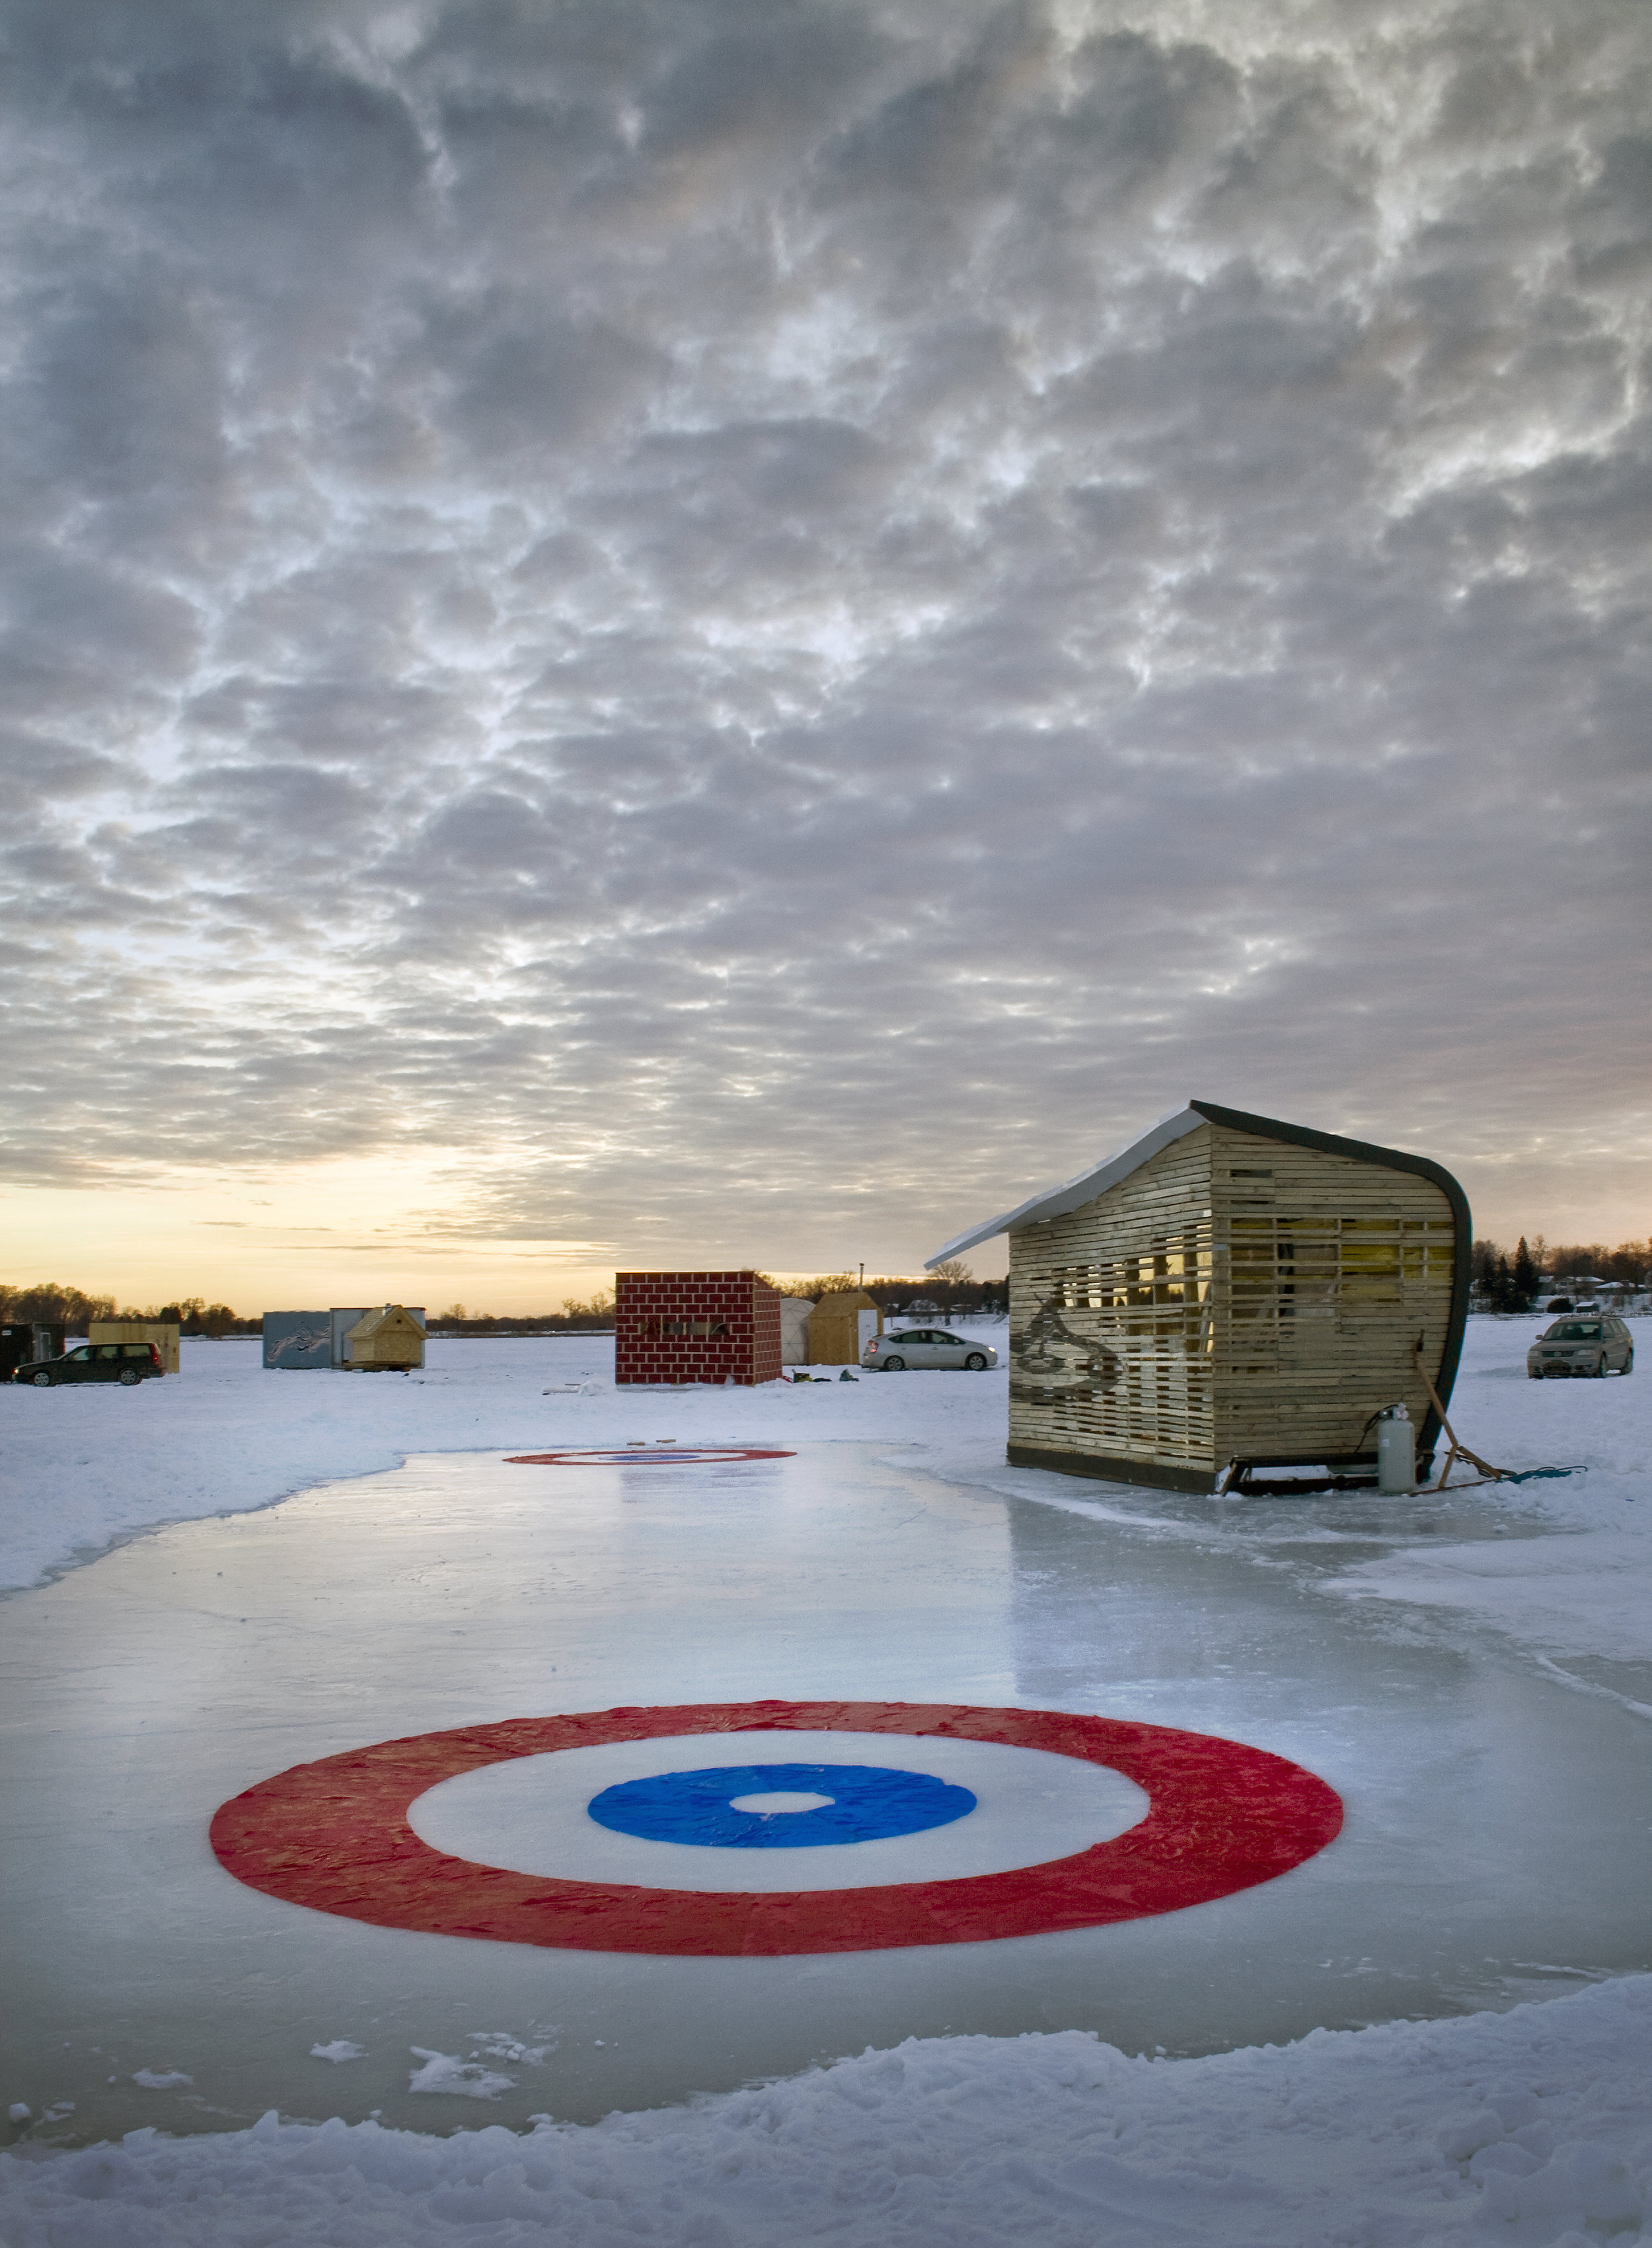 NewStudio Architecture chose a curling theme for its art shanty project